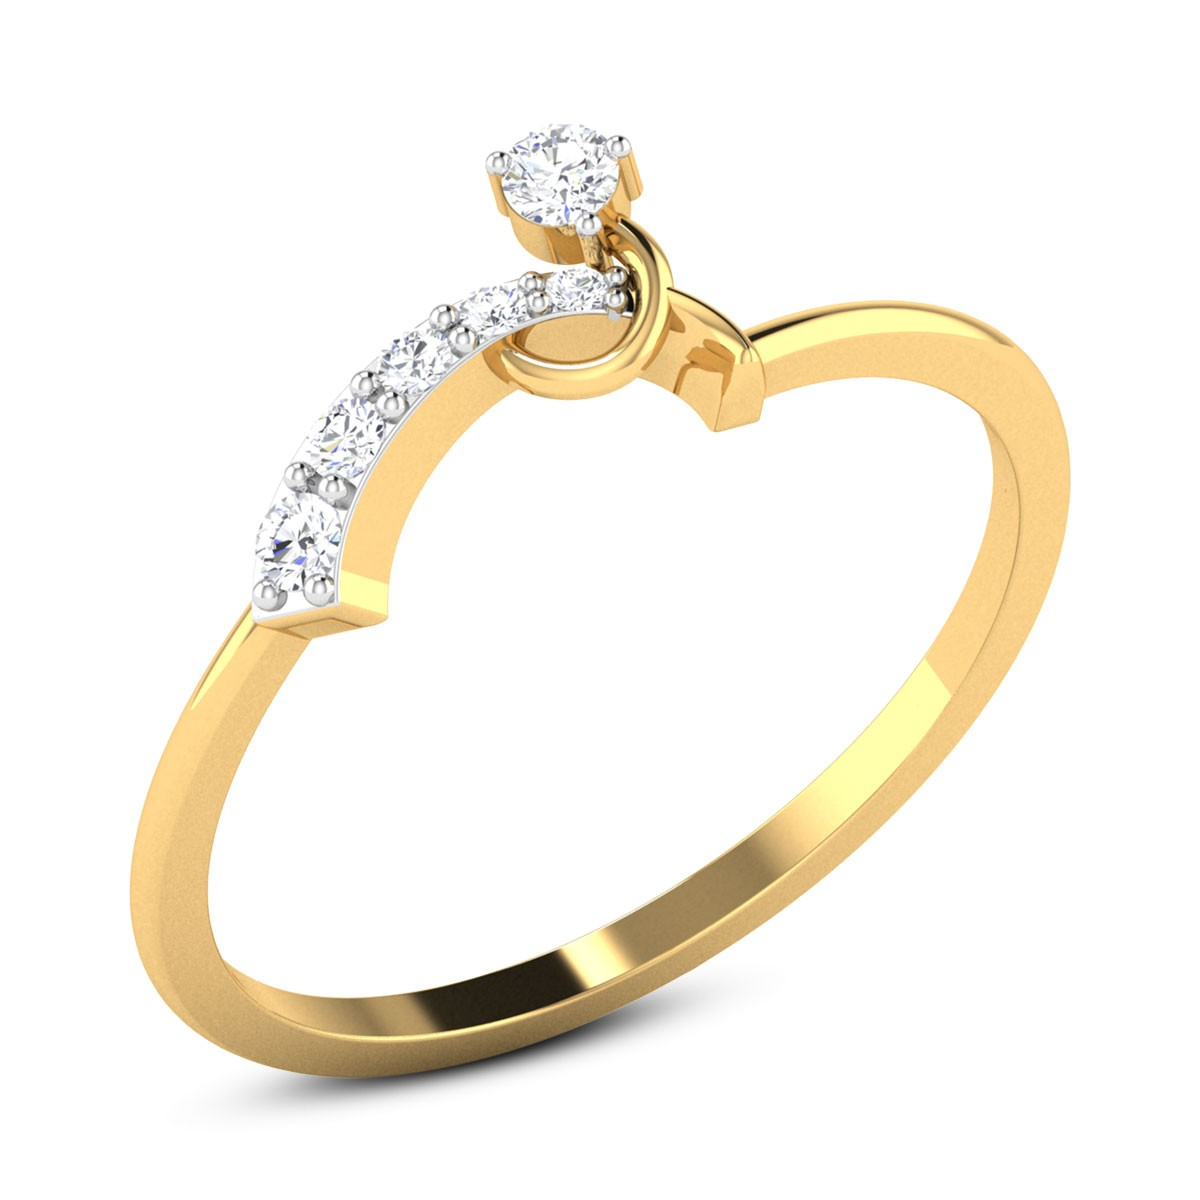 Buy Ophelia Diamond Ring in 2.08 Grams Gold Online